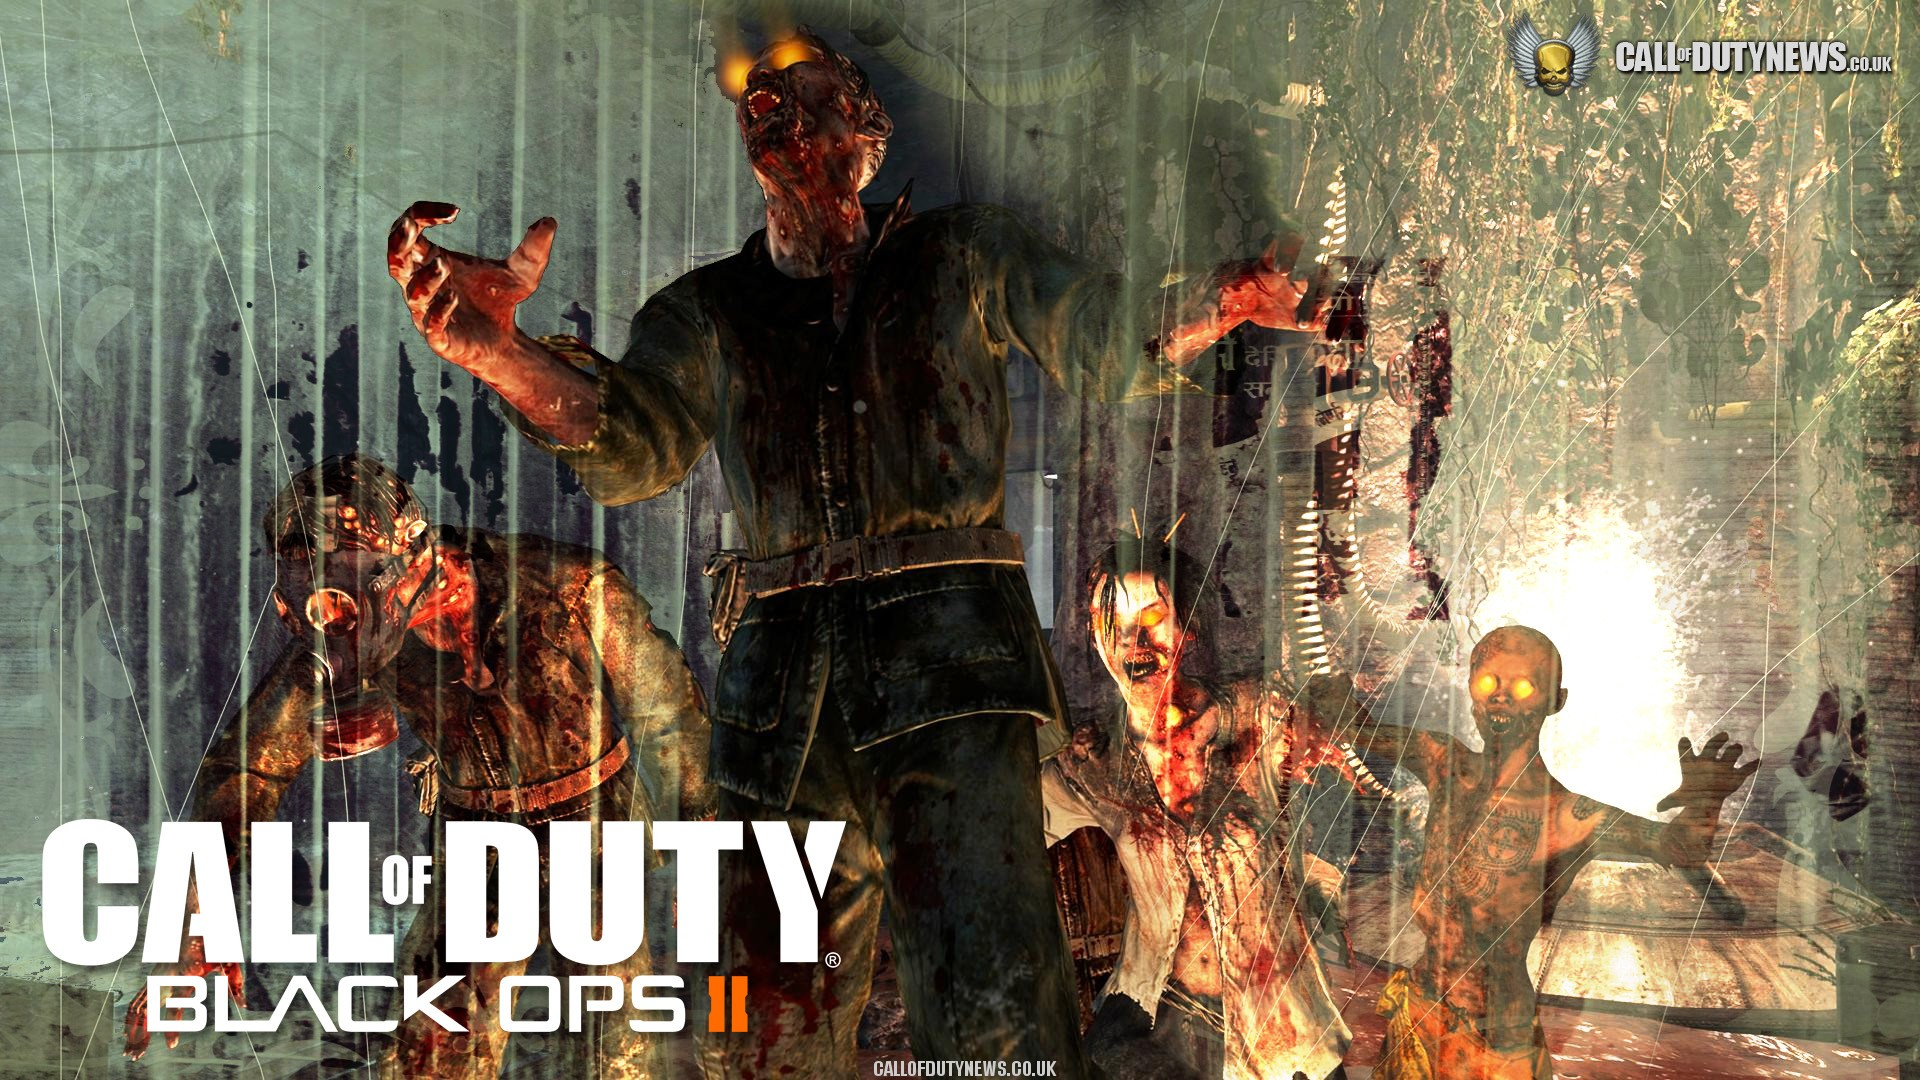 Black Ops 2 Zombies Wallpaper - WallpaperSafari